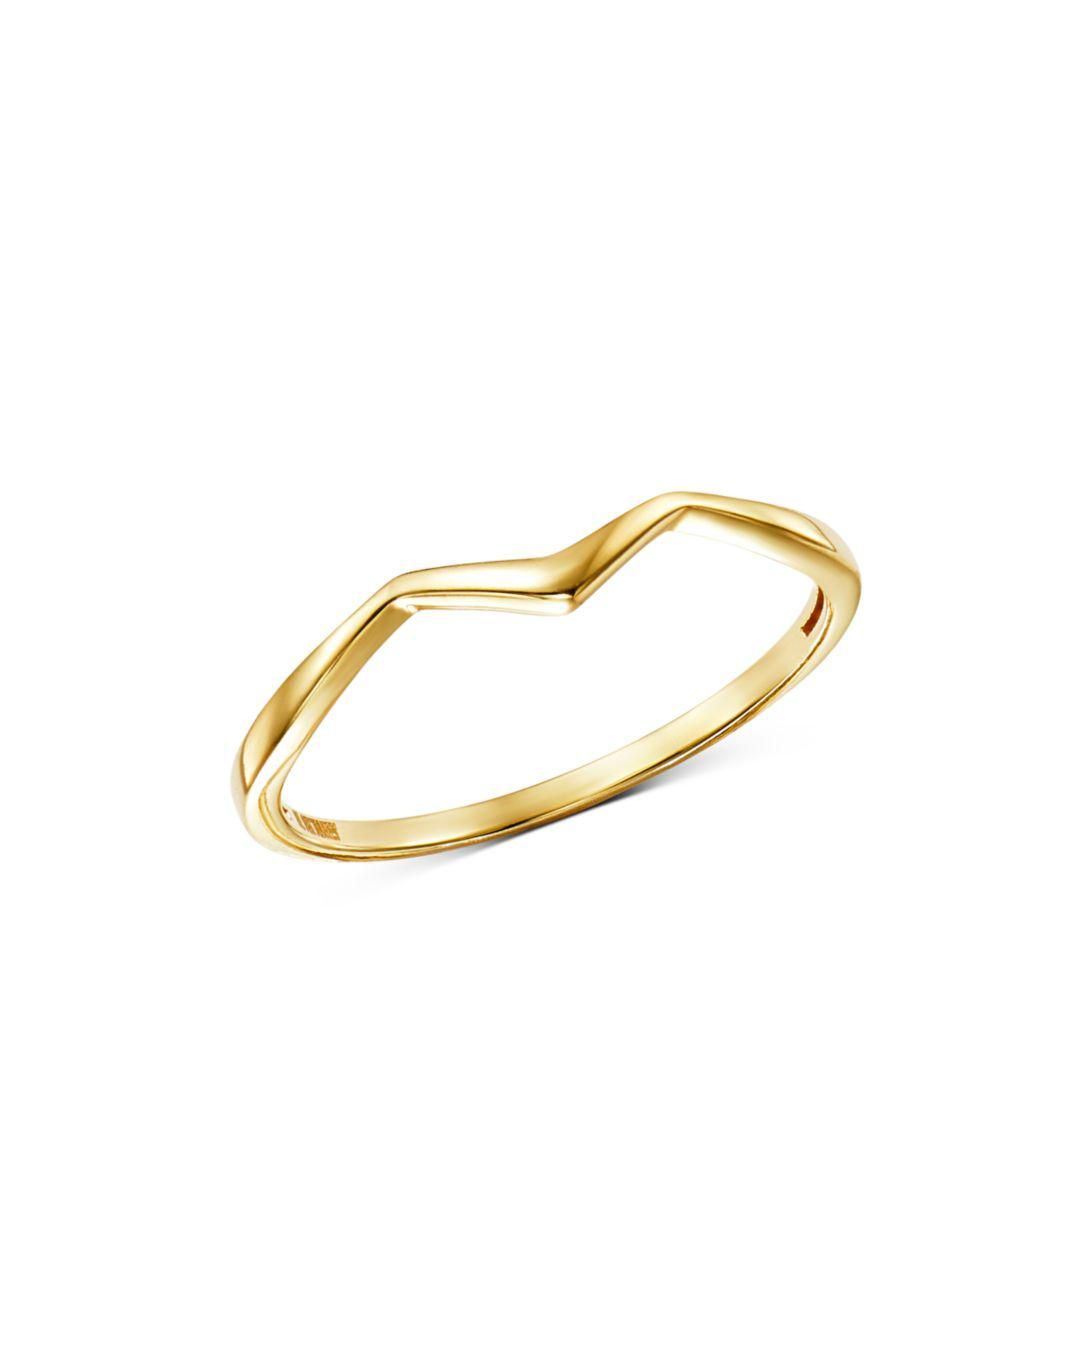 Lyst – Moon & Meadow Polished Zigzag Ring In 14K Yellow Gold In Metallic Intended For 2018 Polished Zigzag Rings (Gallery 1 of 25)